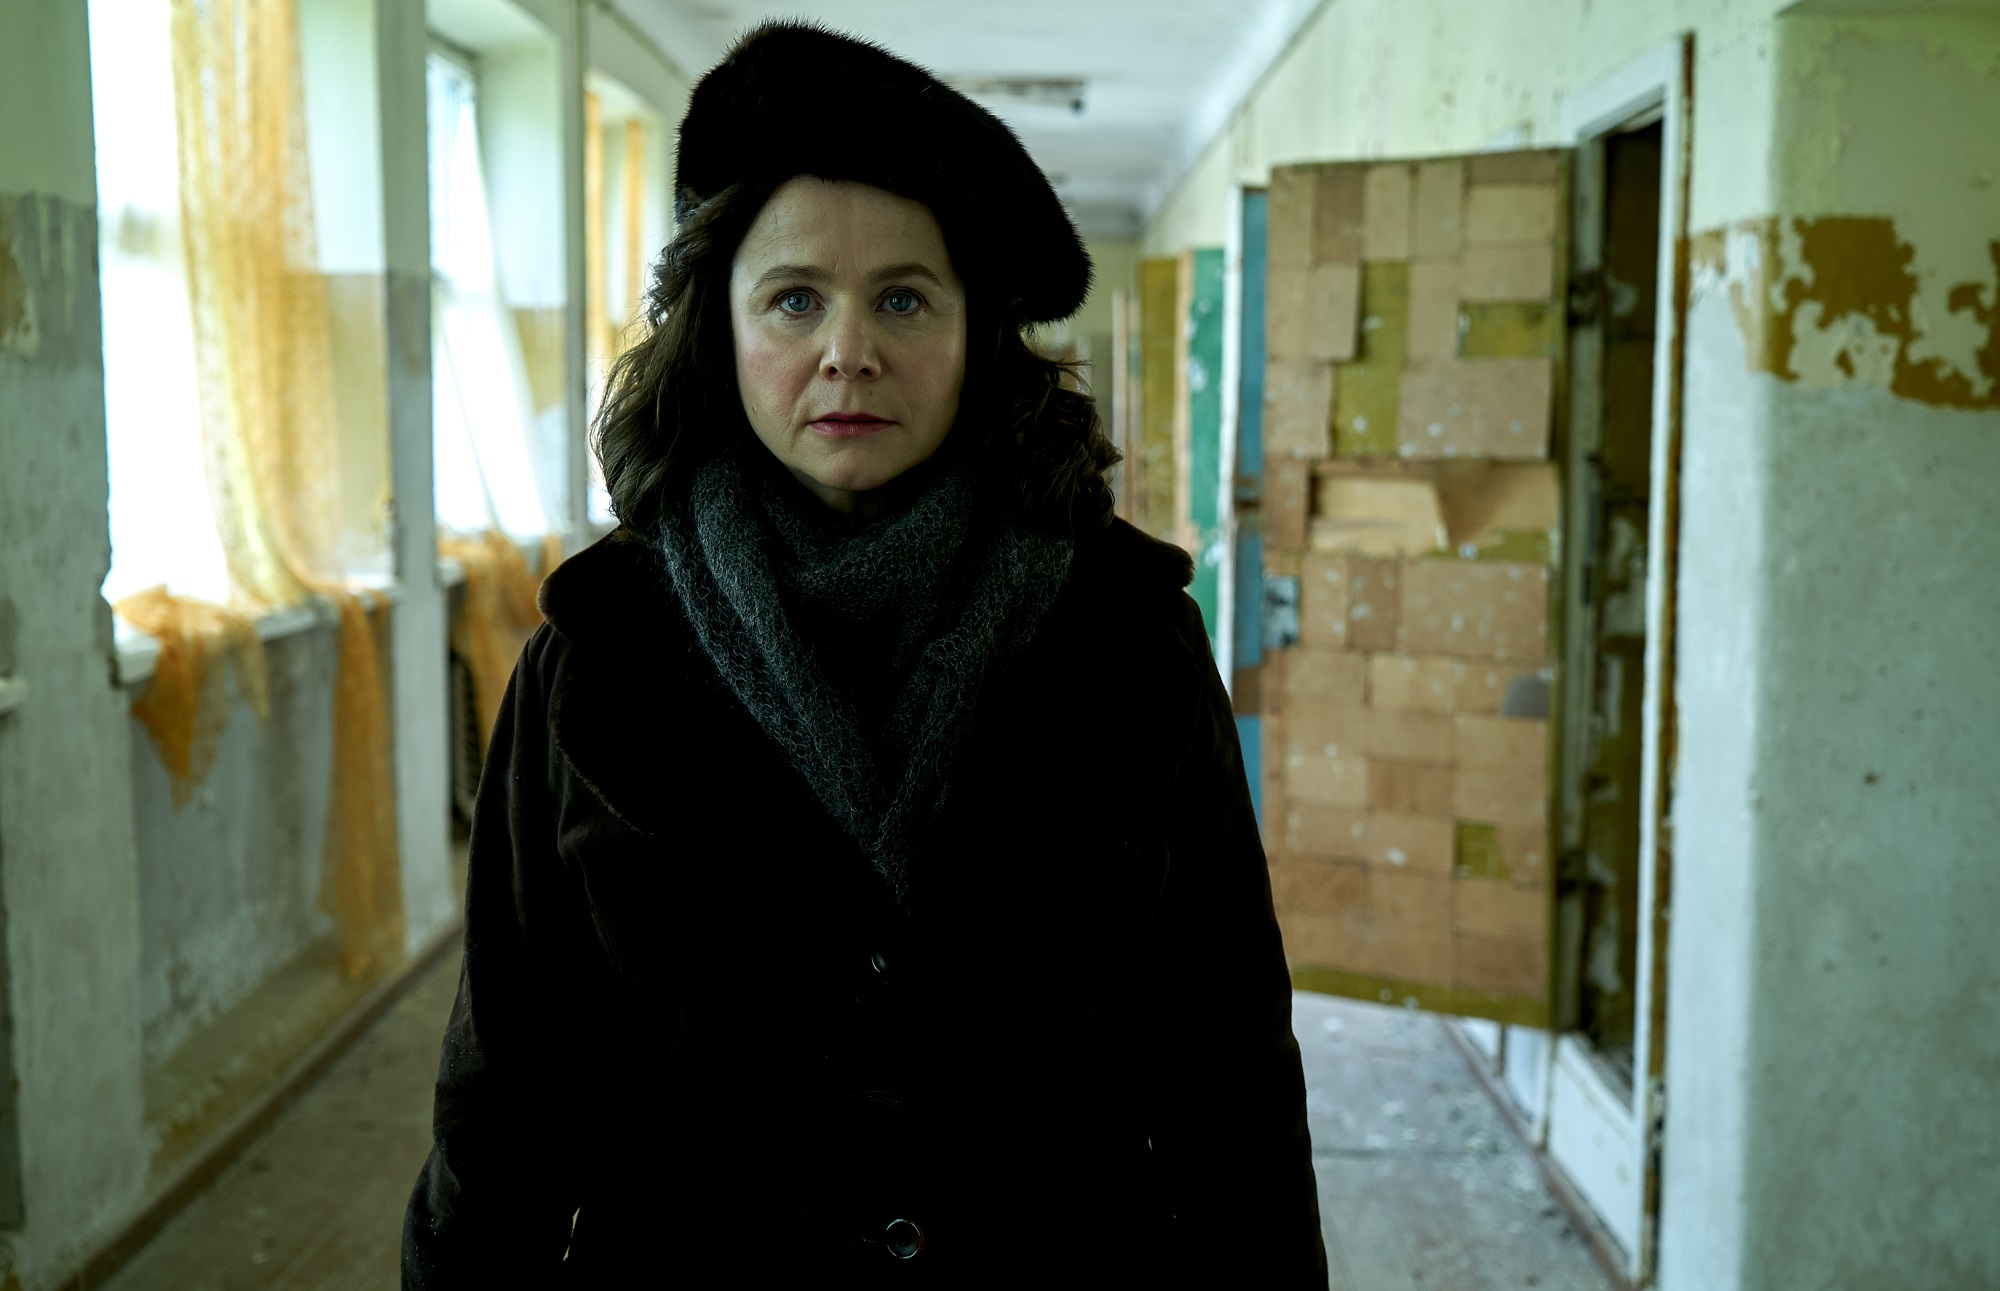 CHERNOBYL-Emily-Watson-as-Ulana-Khomyuk-photo-credit-Liam-Daniel-HBO.jpg